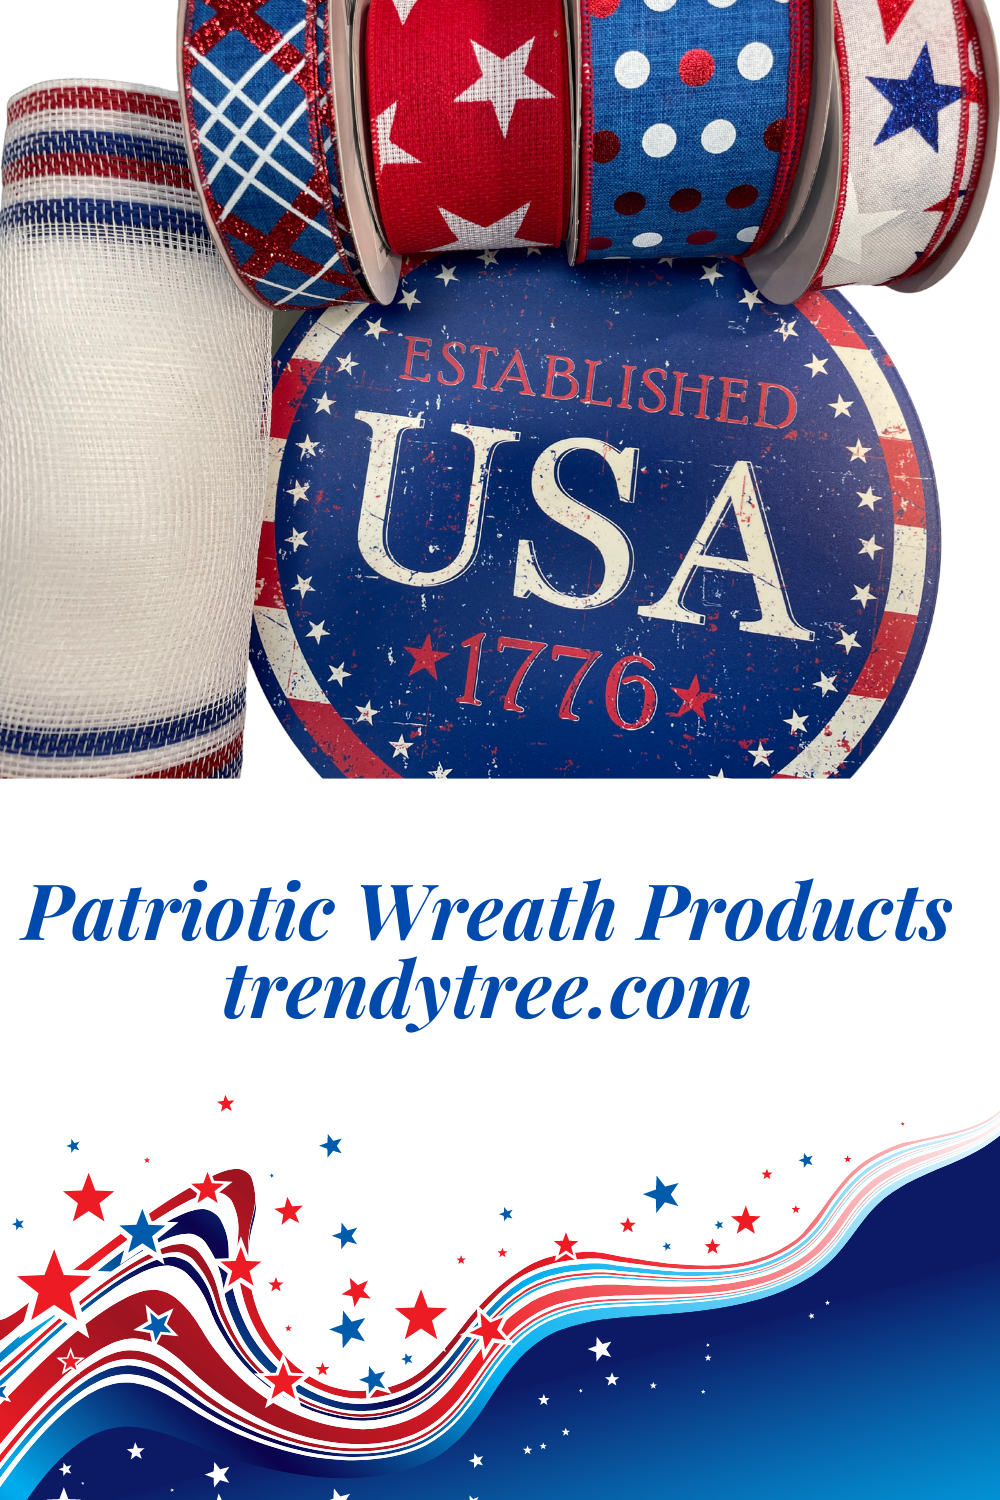 Patriotic Wreath Products from Trendy Tree